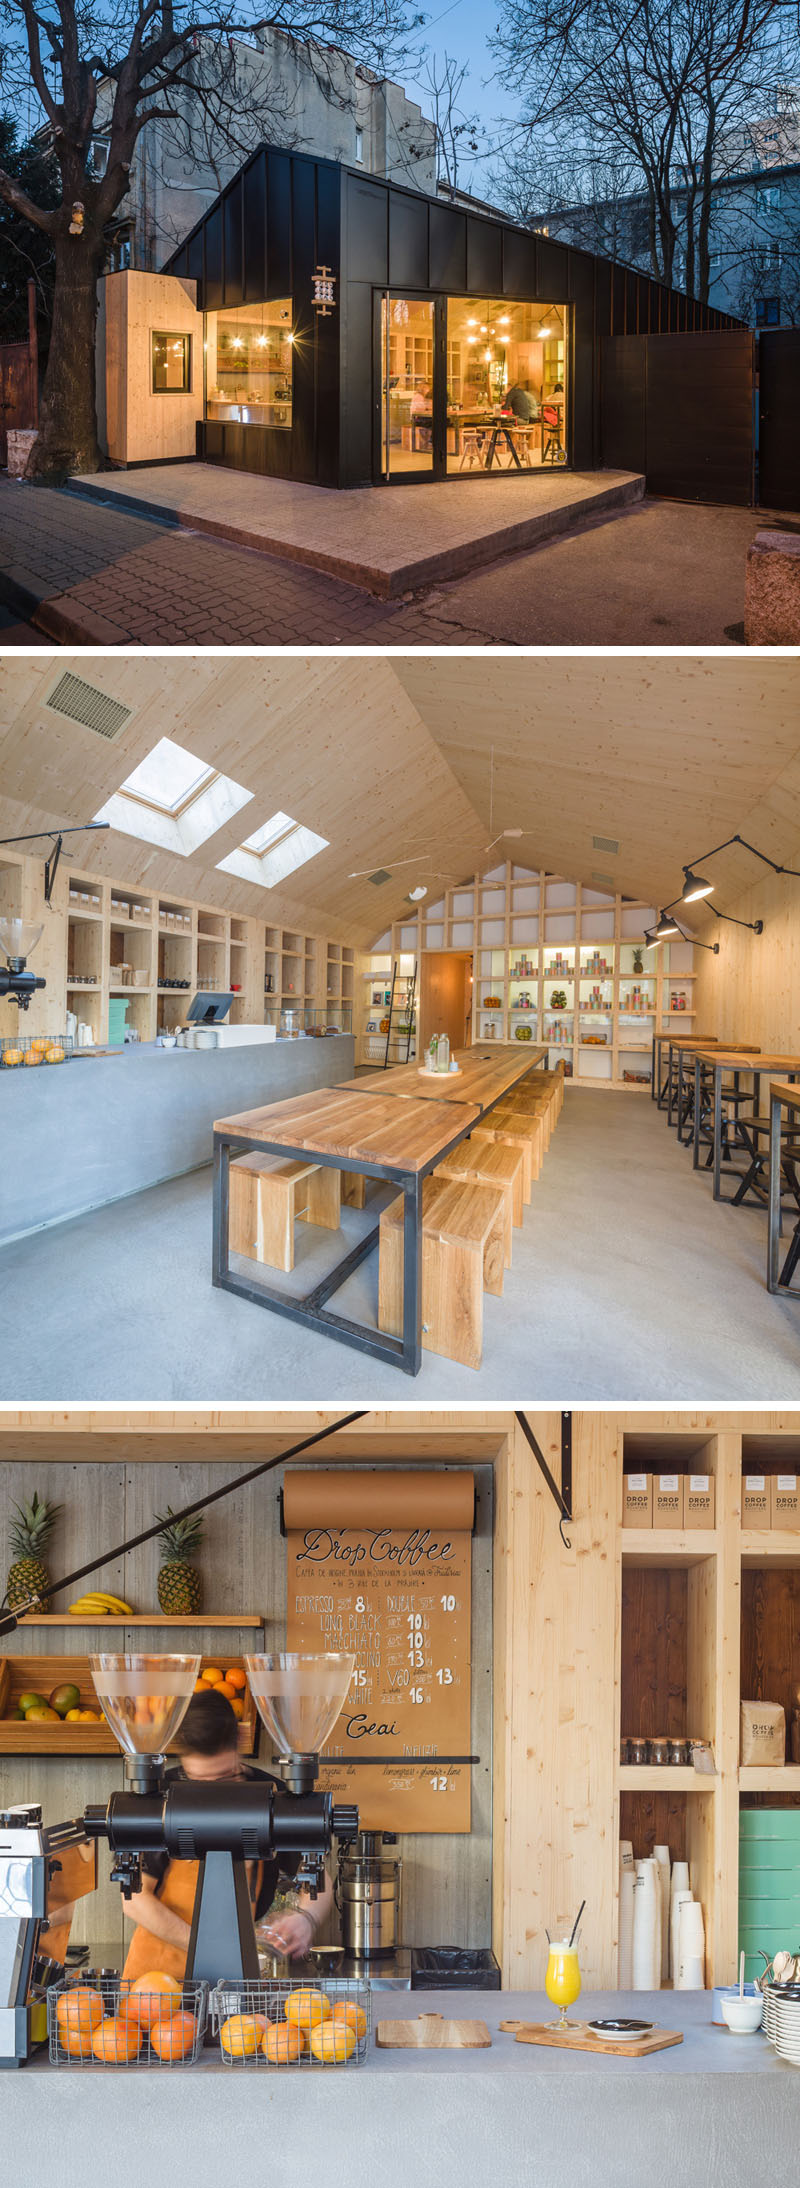 Not a number architects designed fudisiac a juice bar and cafe in bucharest romania with a simple wood steel and concrete interior that showcases their